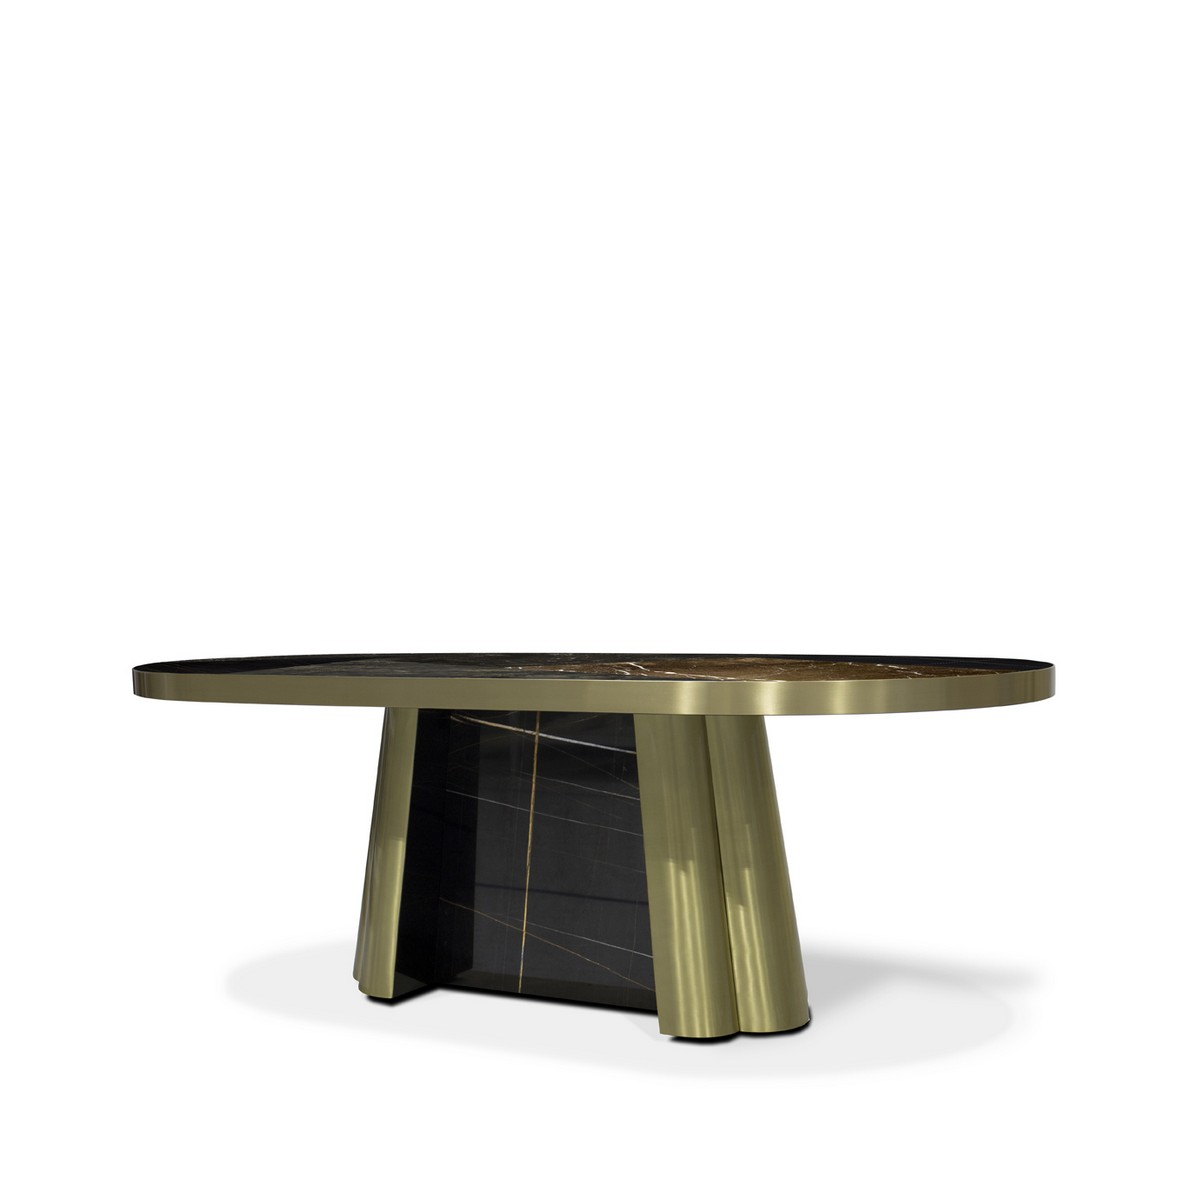 The Decodiva Dining Table: Craftsmanship Meets Contemporary Design